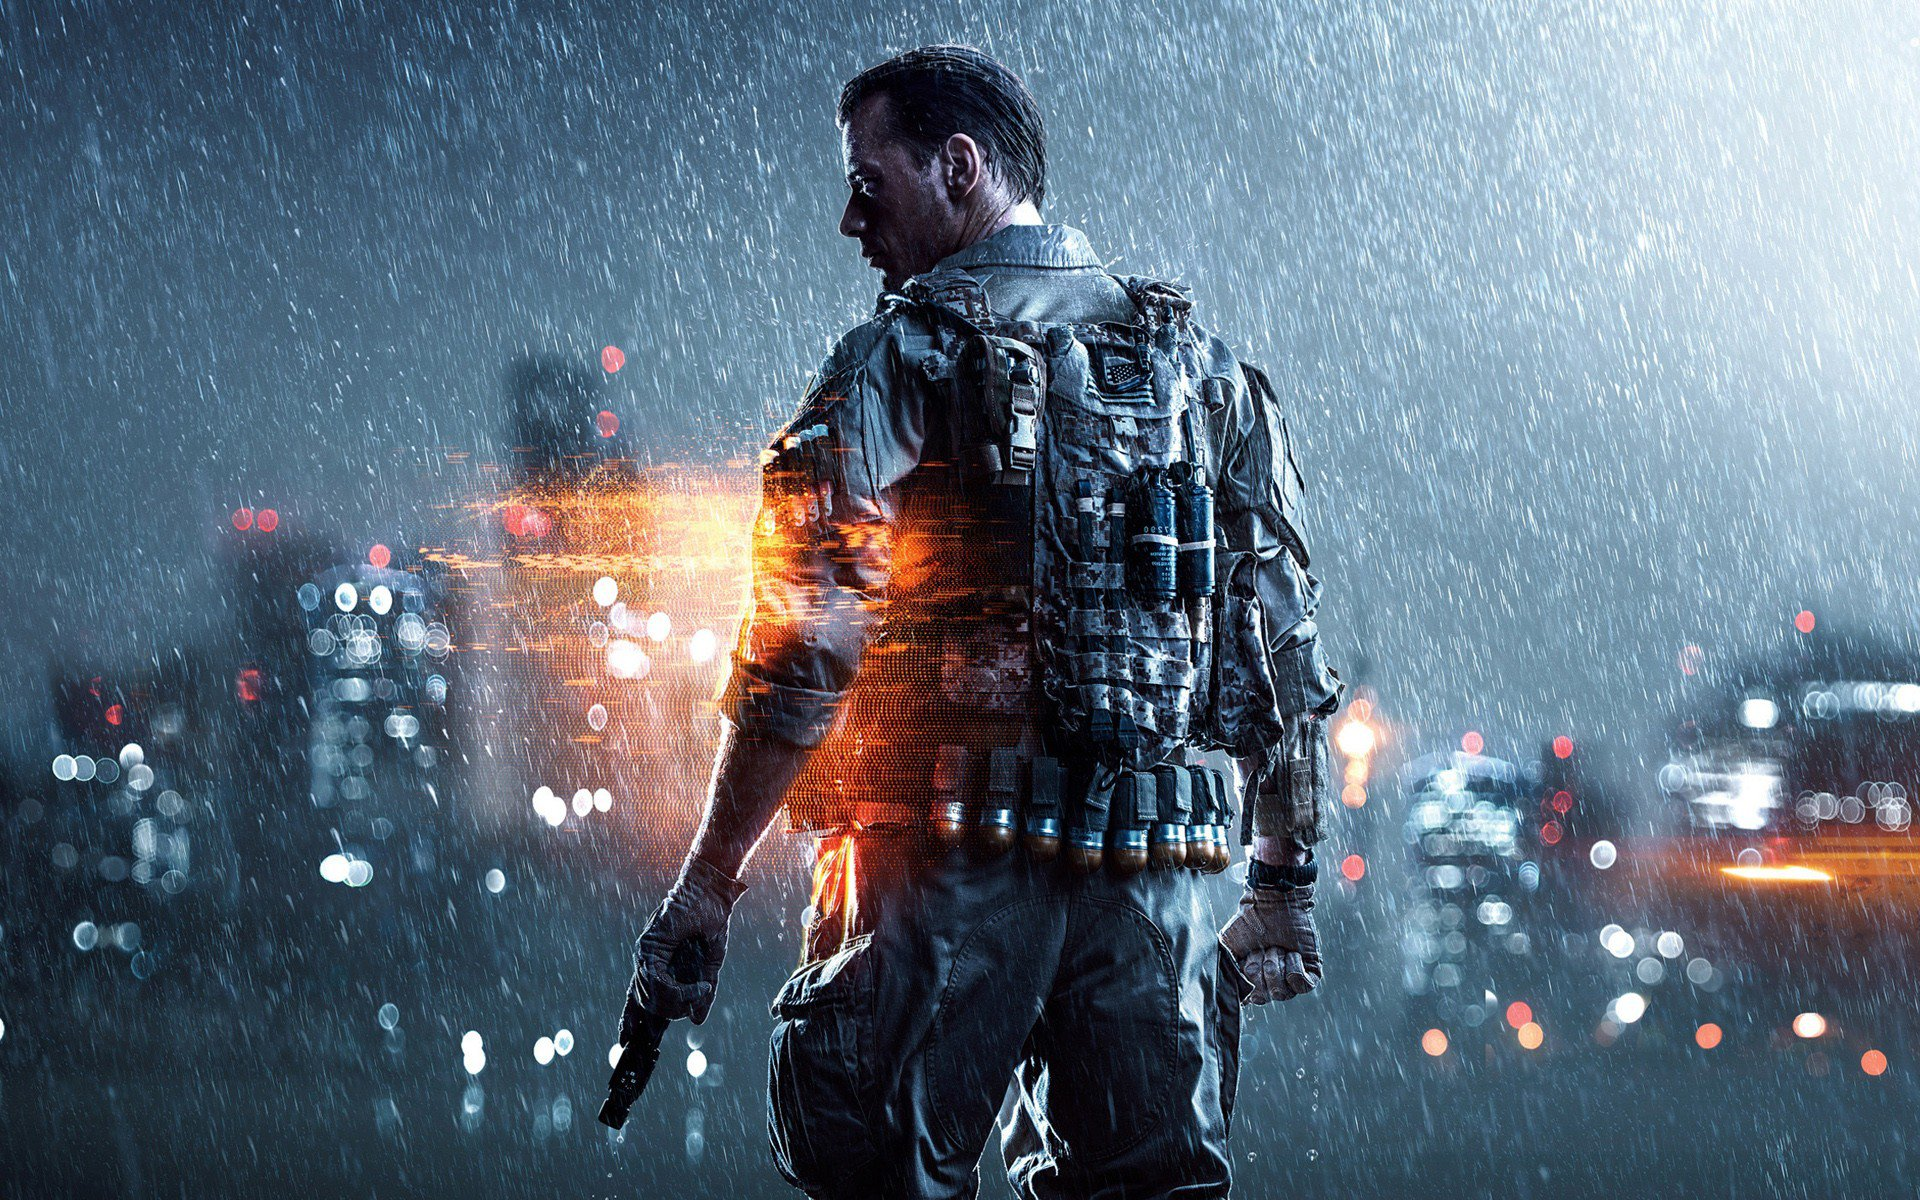 Download Wallpaper 1280x1280 Battlefield 4 Game Ea: Battlefield 4 HD Game, HD Games, 4k Wallpapers, Images